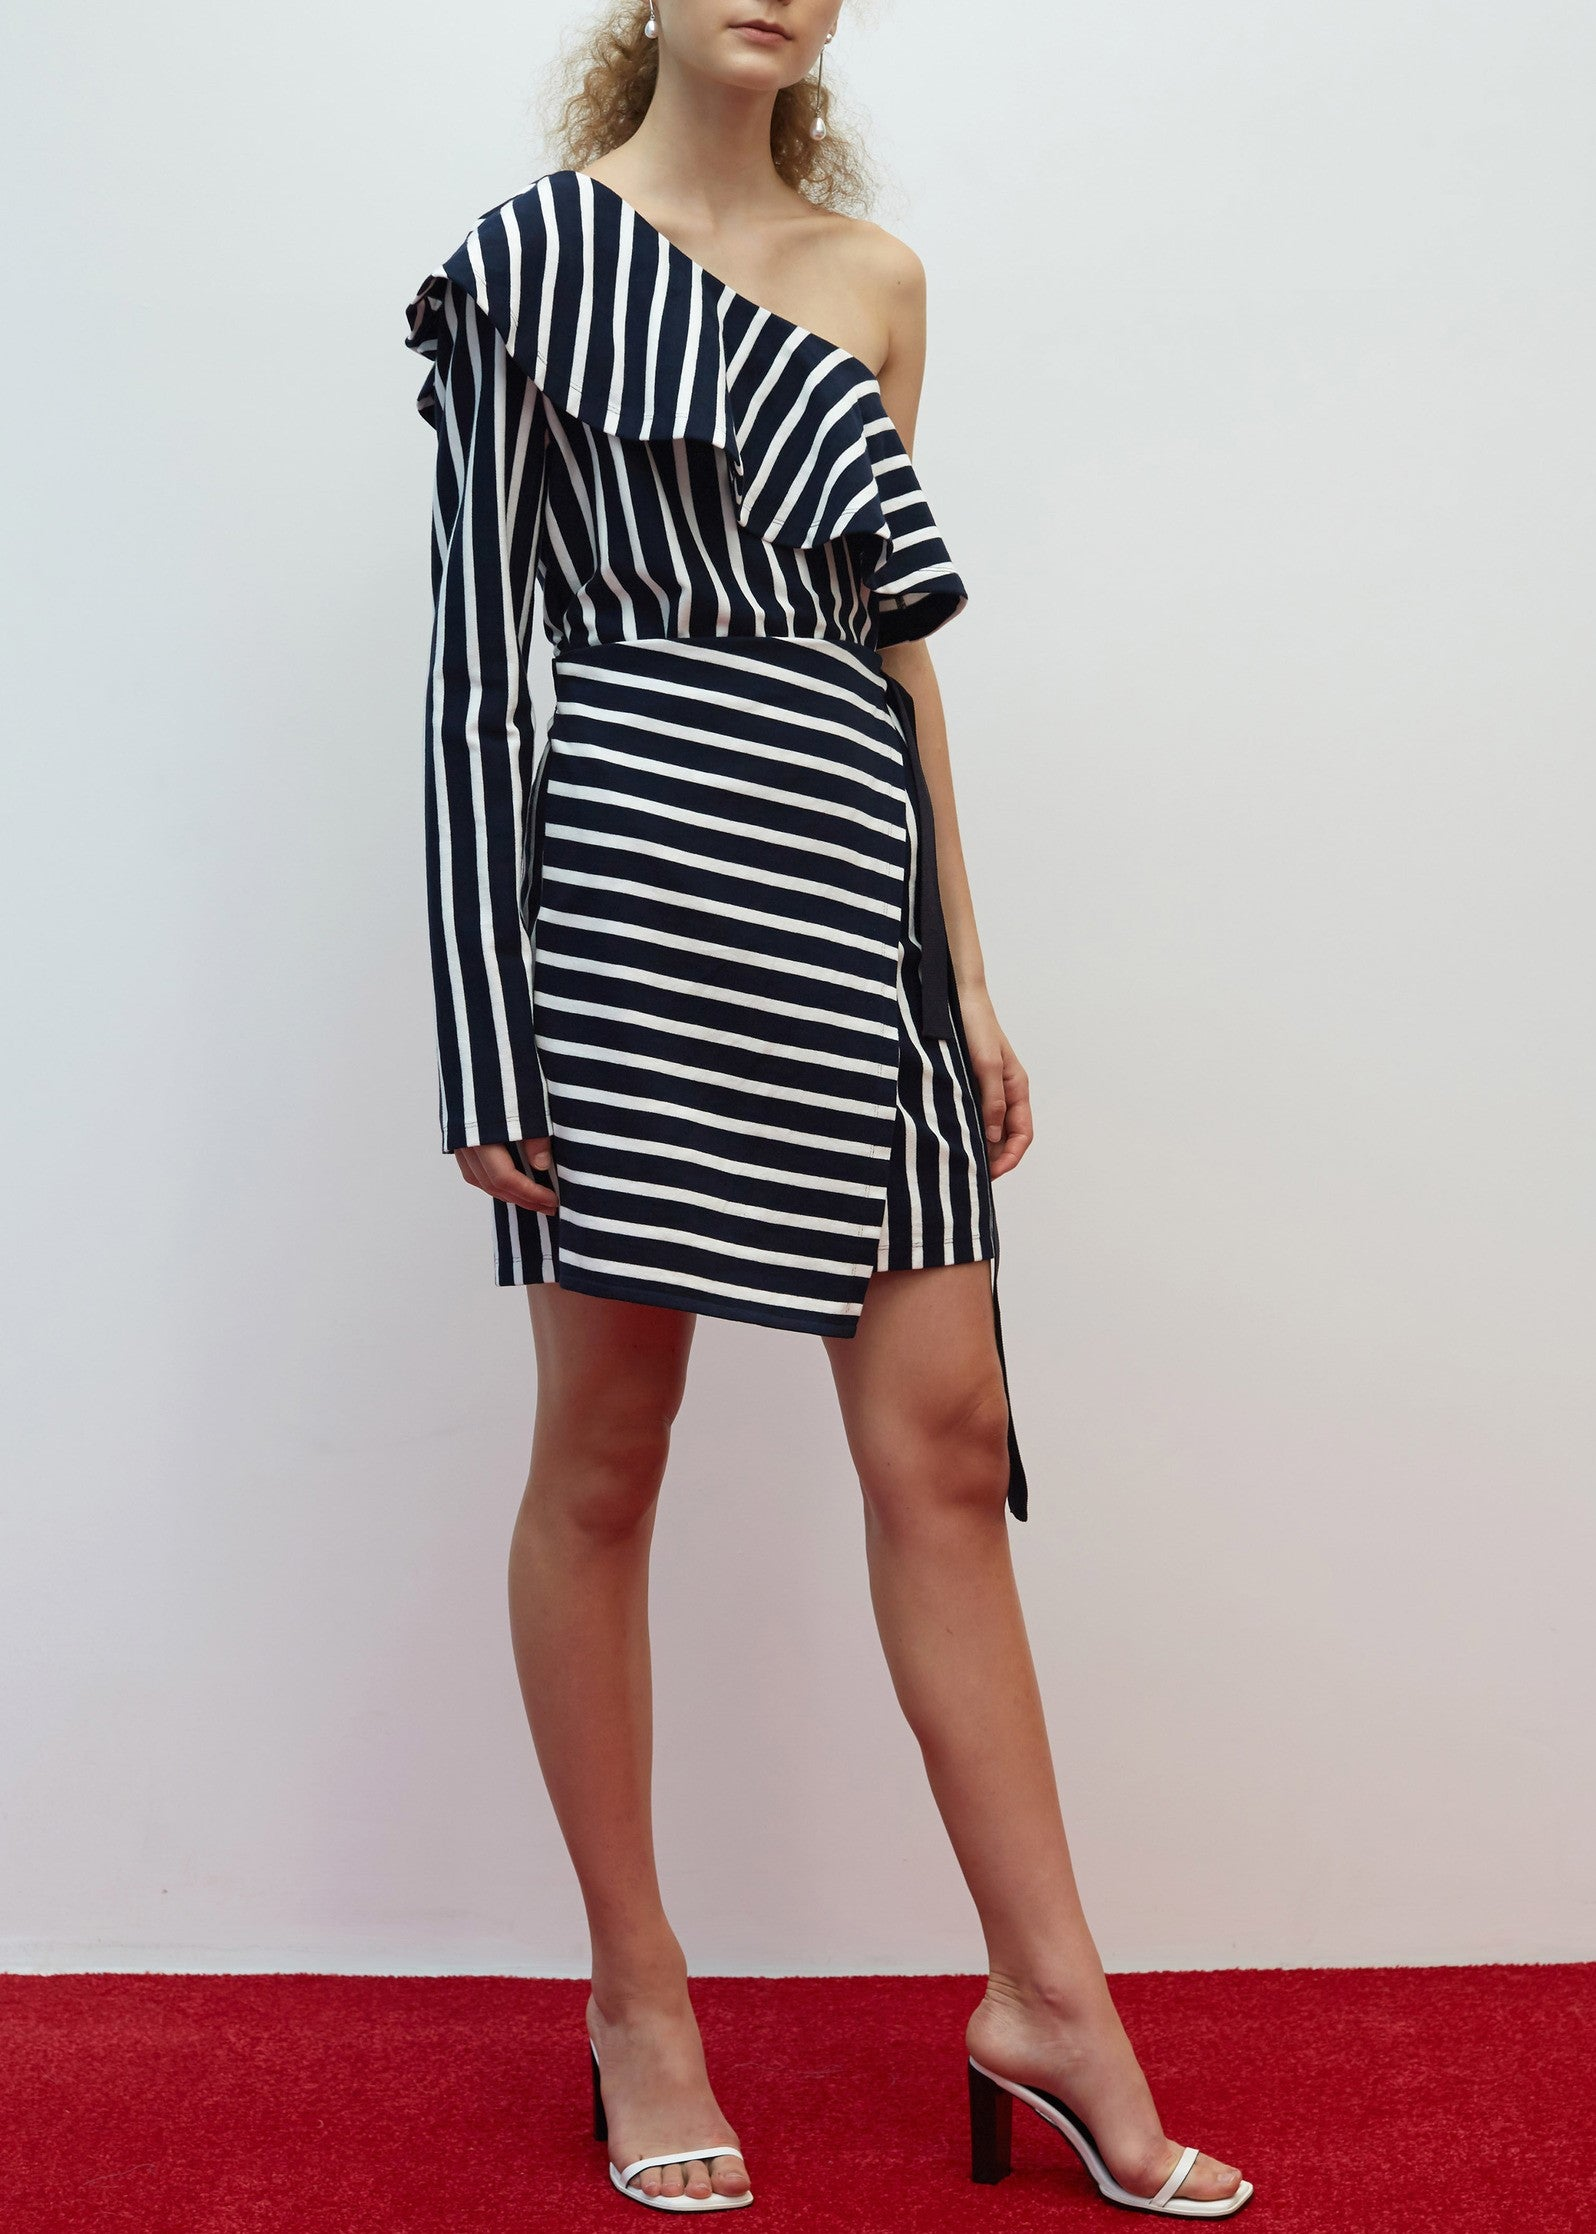 Goen.J ruffled one shoulder striped jersey wrap dress